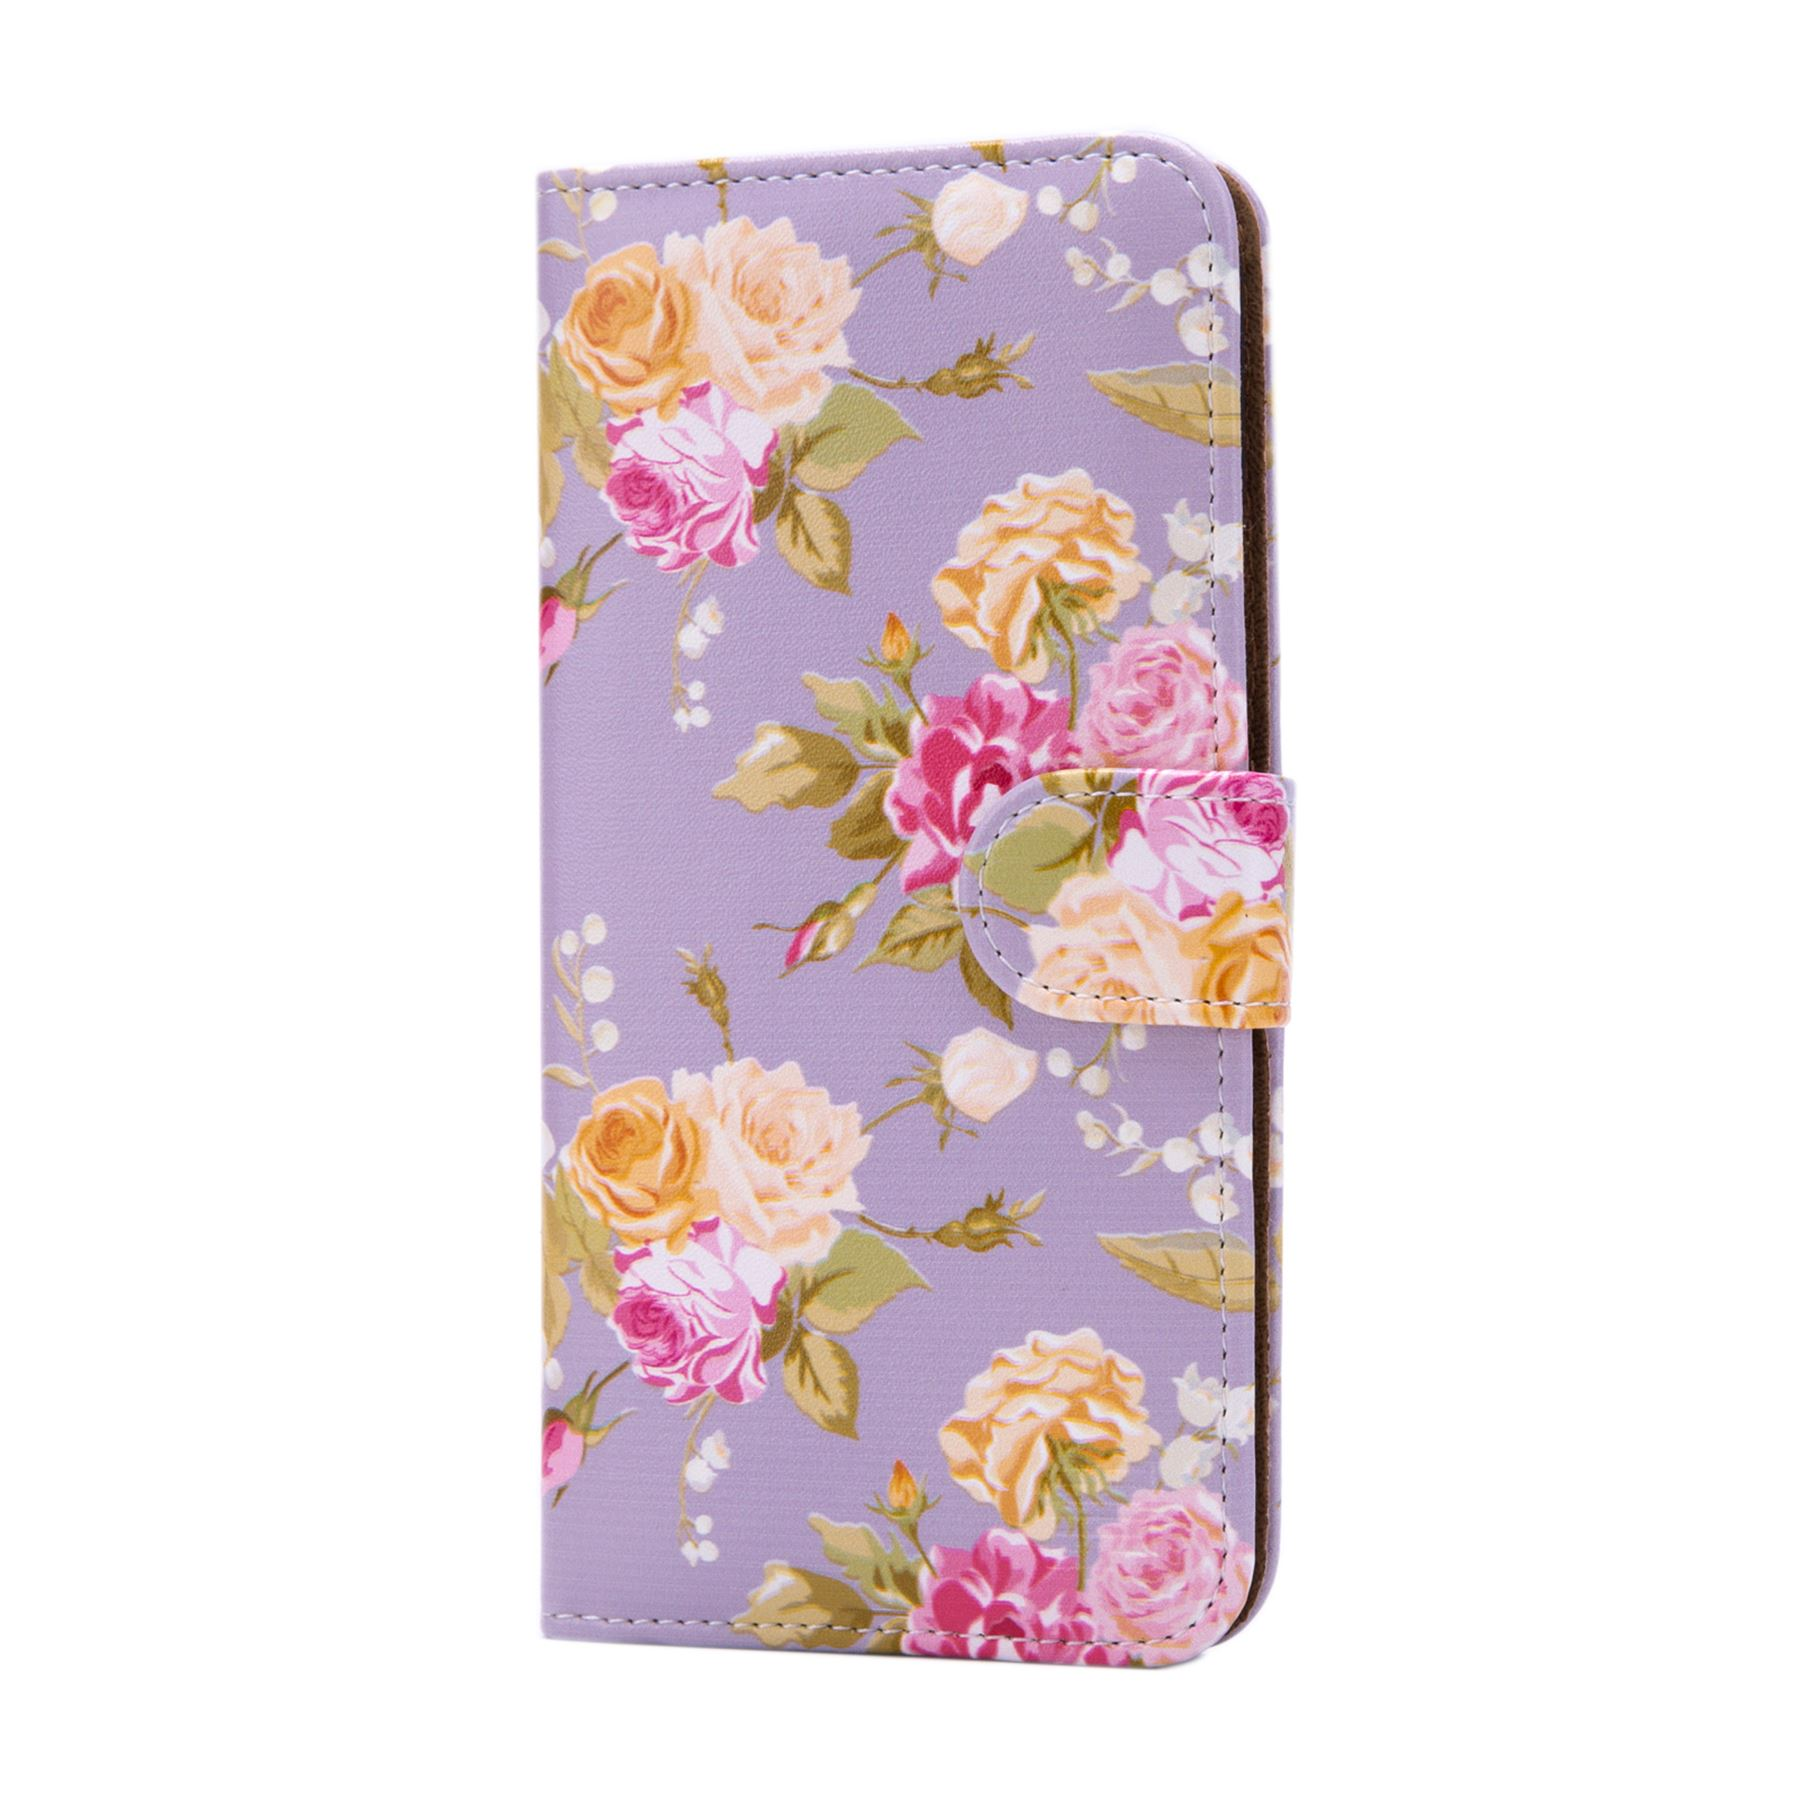 PU-Leather-Floral-Design-Book-Wallet-Case-Cover-For-Google-Pixel thumbnail 38